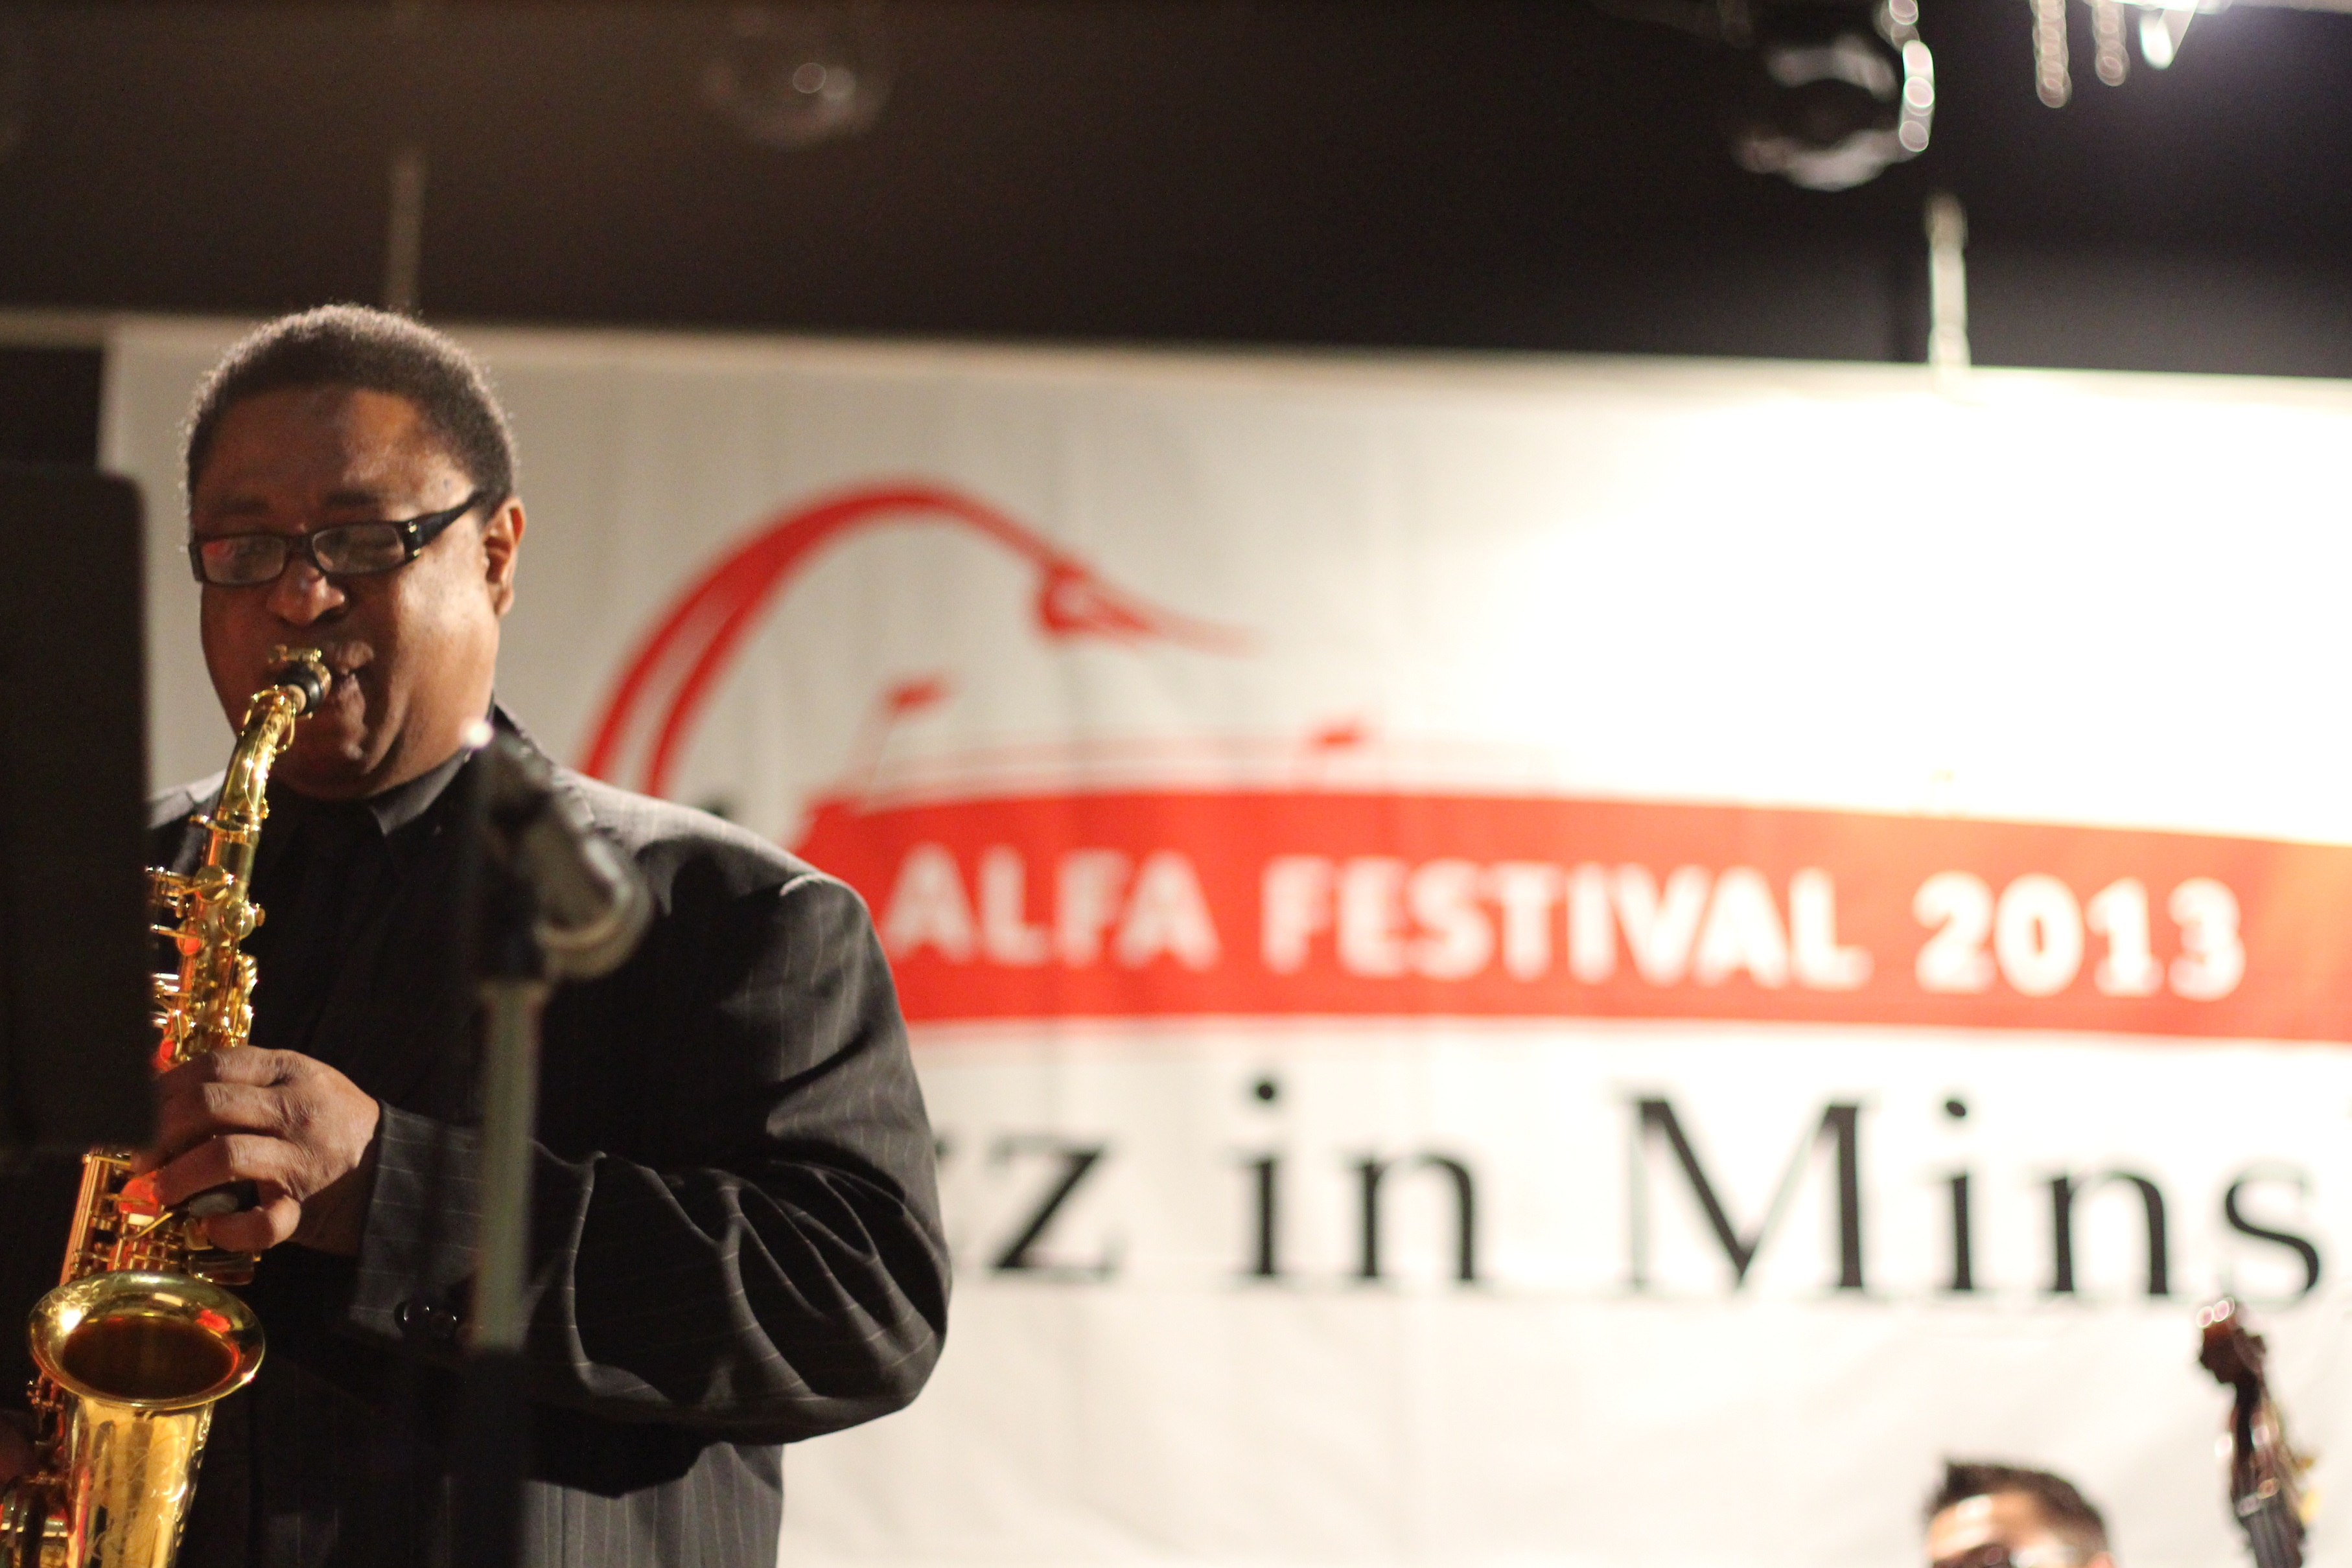 Vincent herring at the 2013 minsk jazz festival